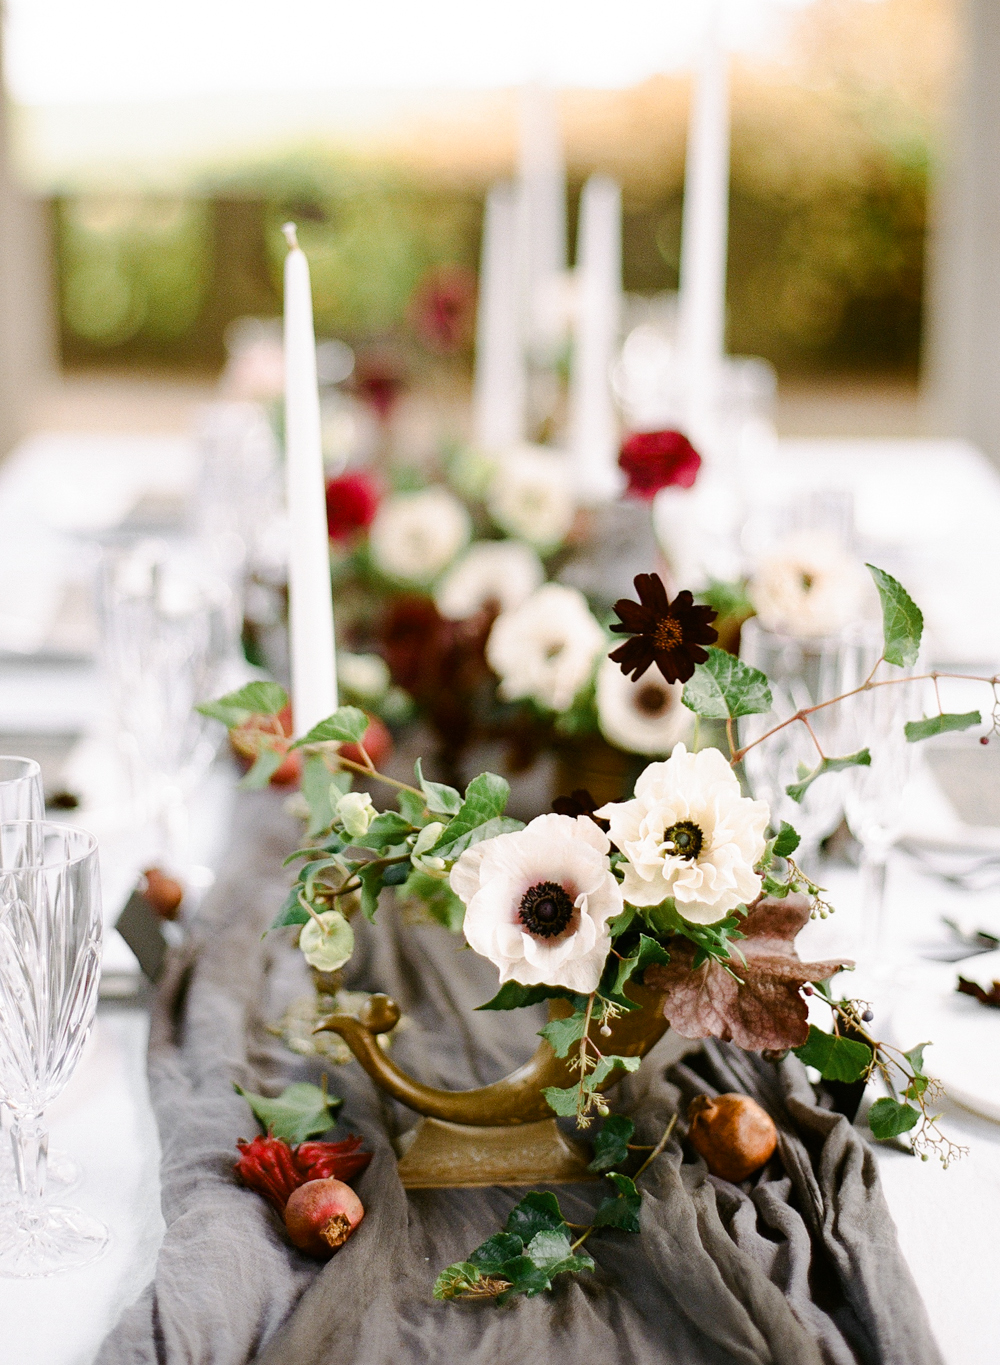 French Horn Centerpieces